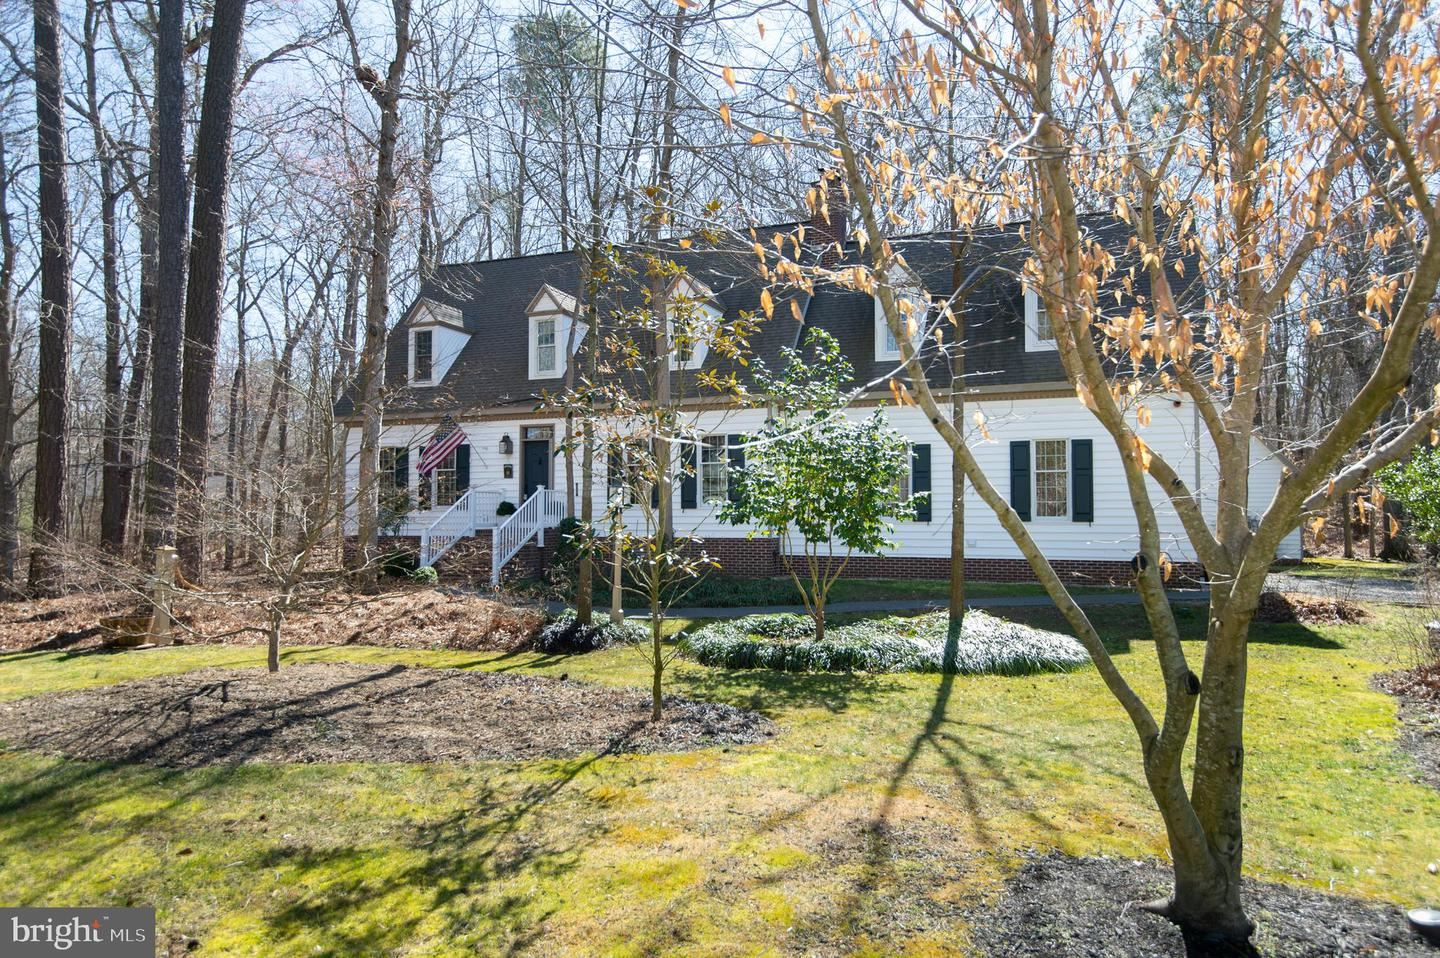 Photo for 2407 BEECH ST, CAMBRIDGE, MD 21613 (MLS # MDDO125132)